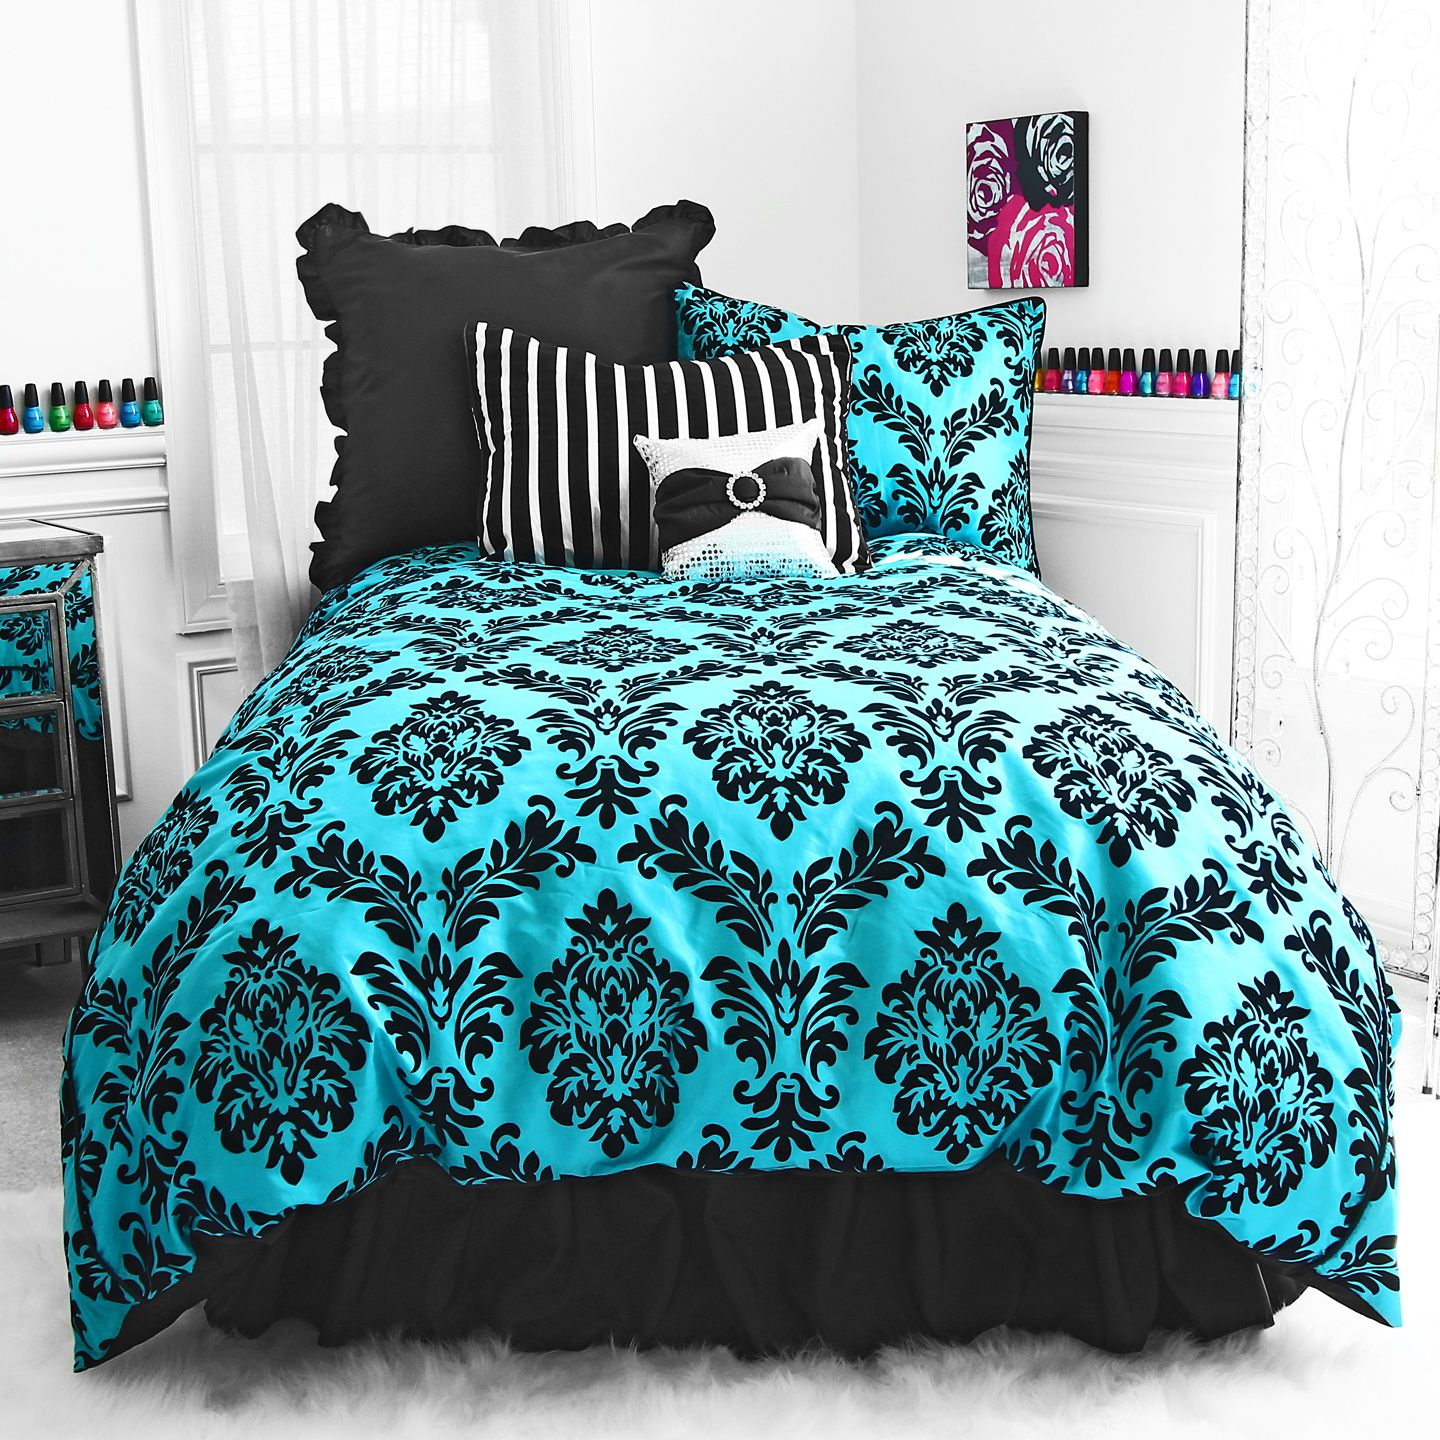 Fashion For Your Room Black Flocked Damask Pattern, Satin Piping